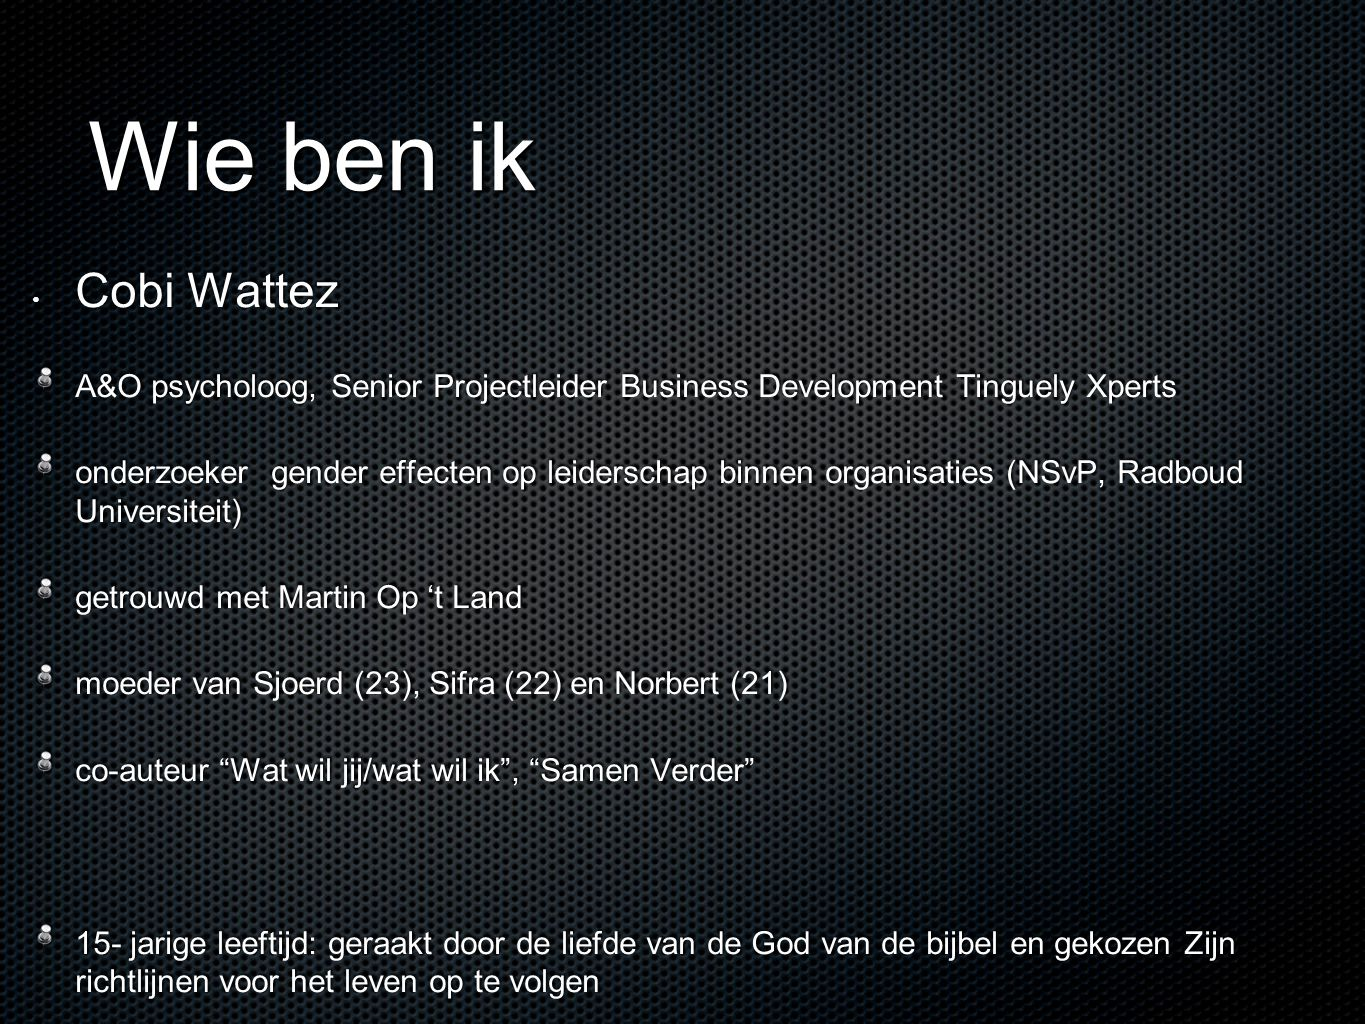 Wie ben ik Cobi Wattez. A&O psycholoog, Senior Projectleider Business Development Tinguely Xperts.